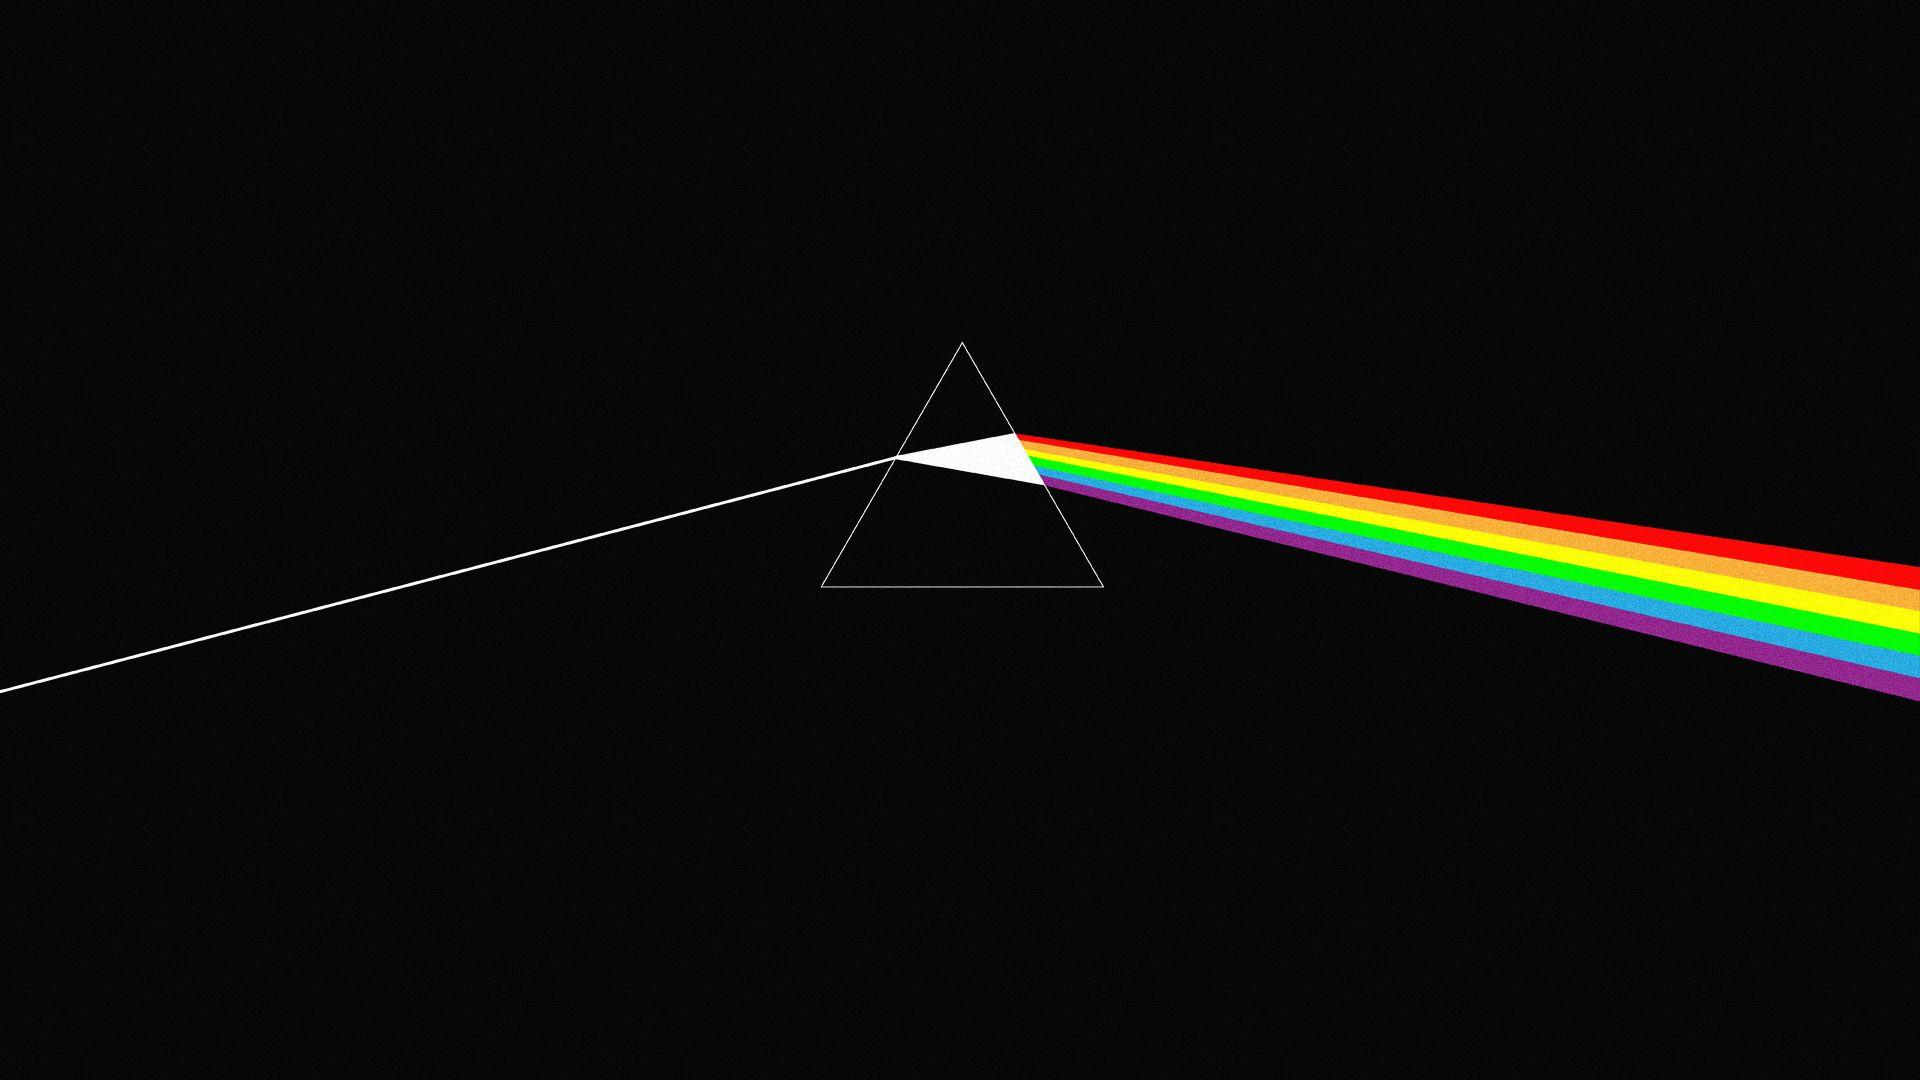 Pink Floyd Wallpapers 23795 1920x1080 px ~ HDWallSource